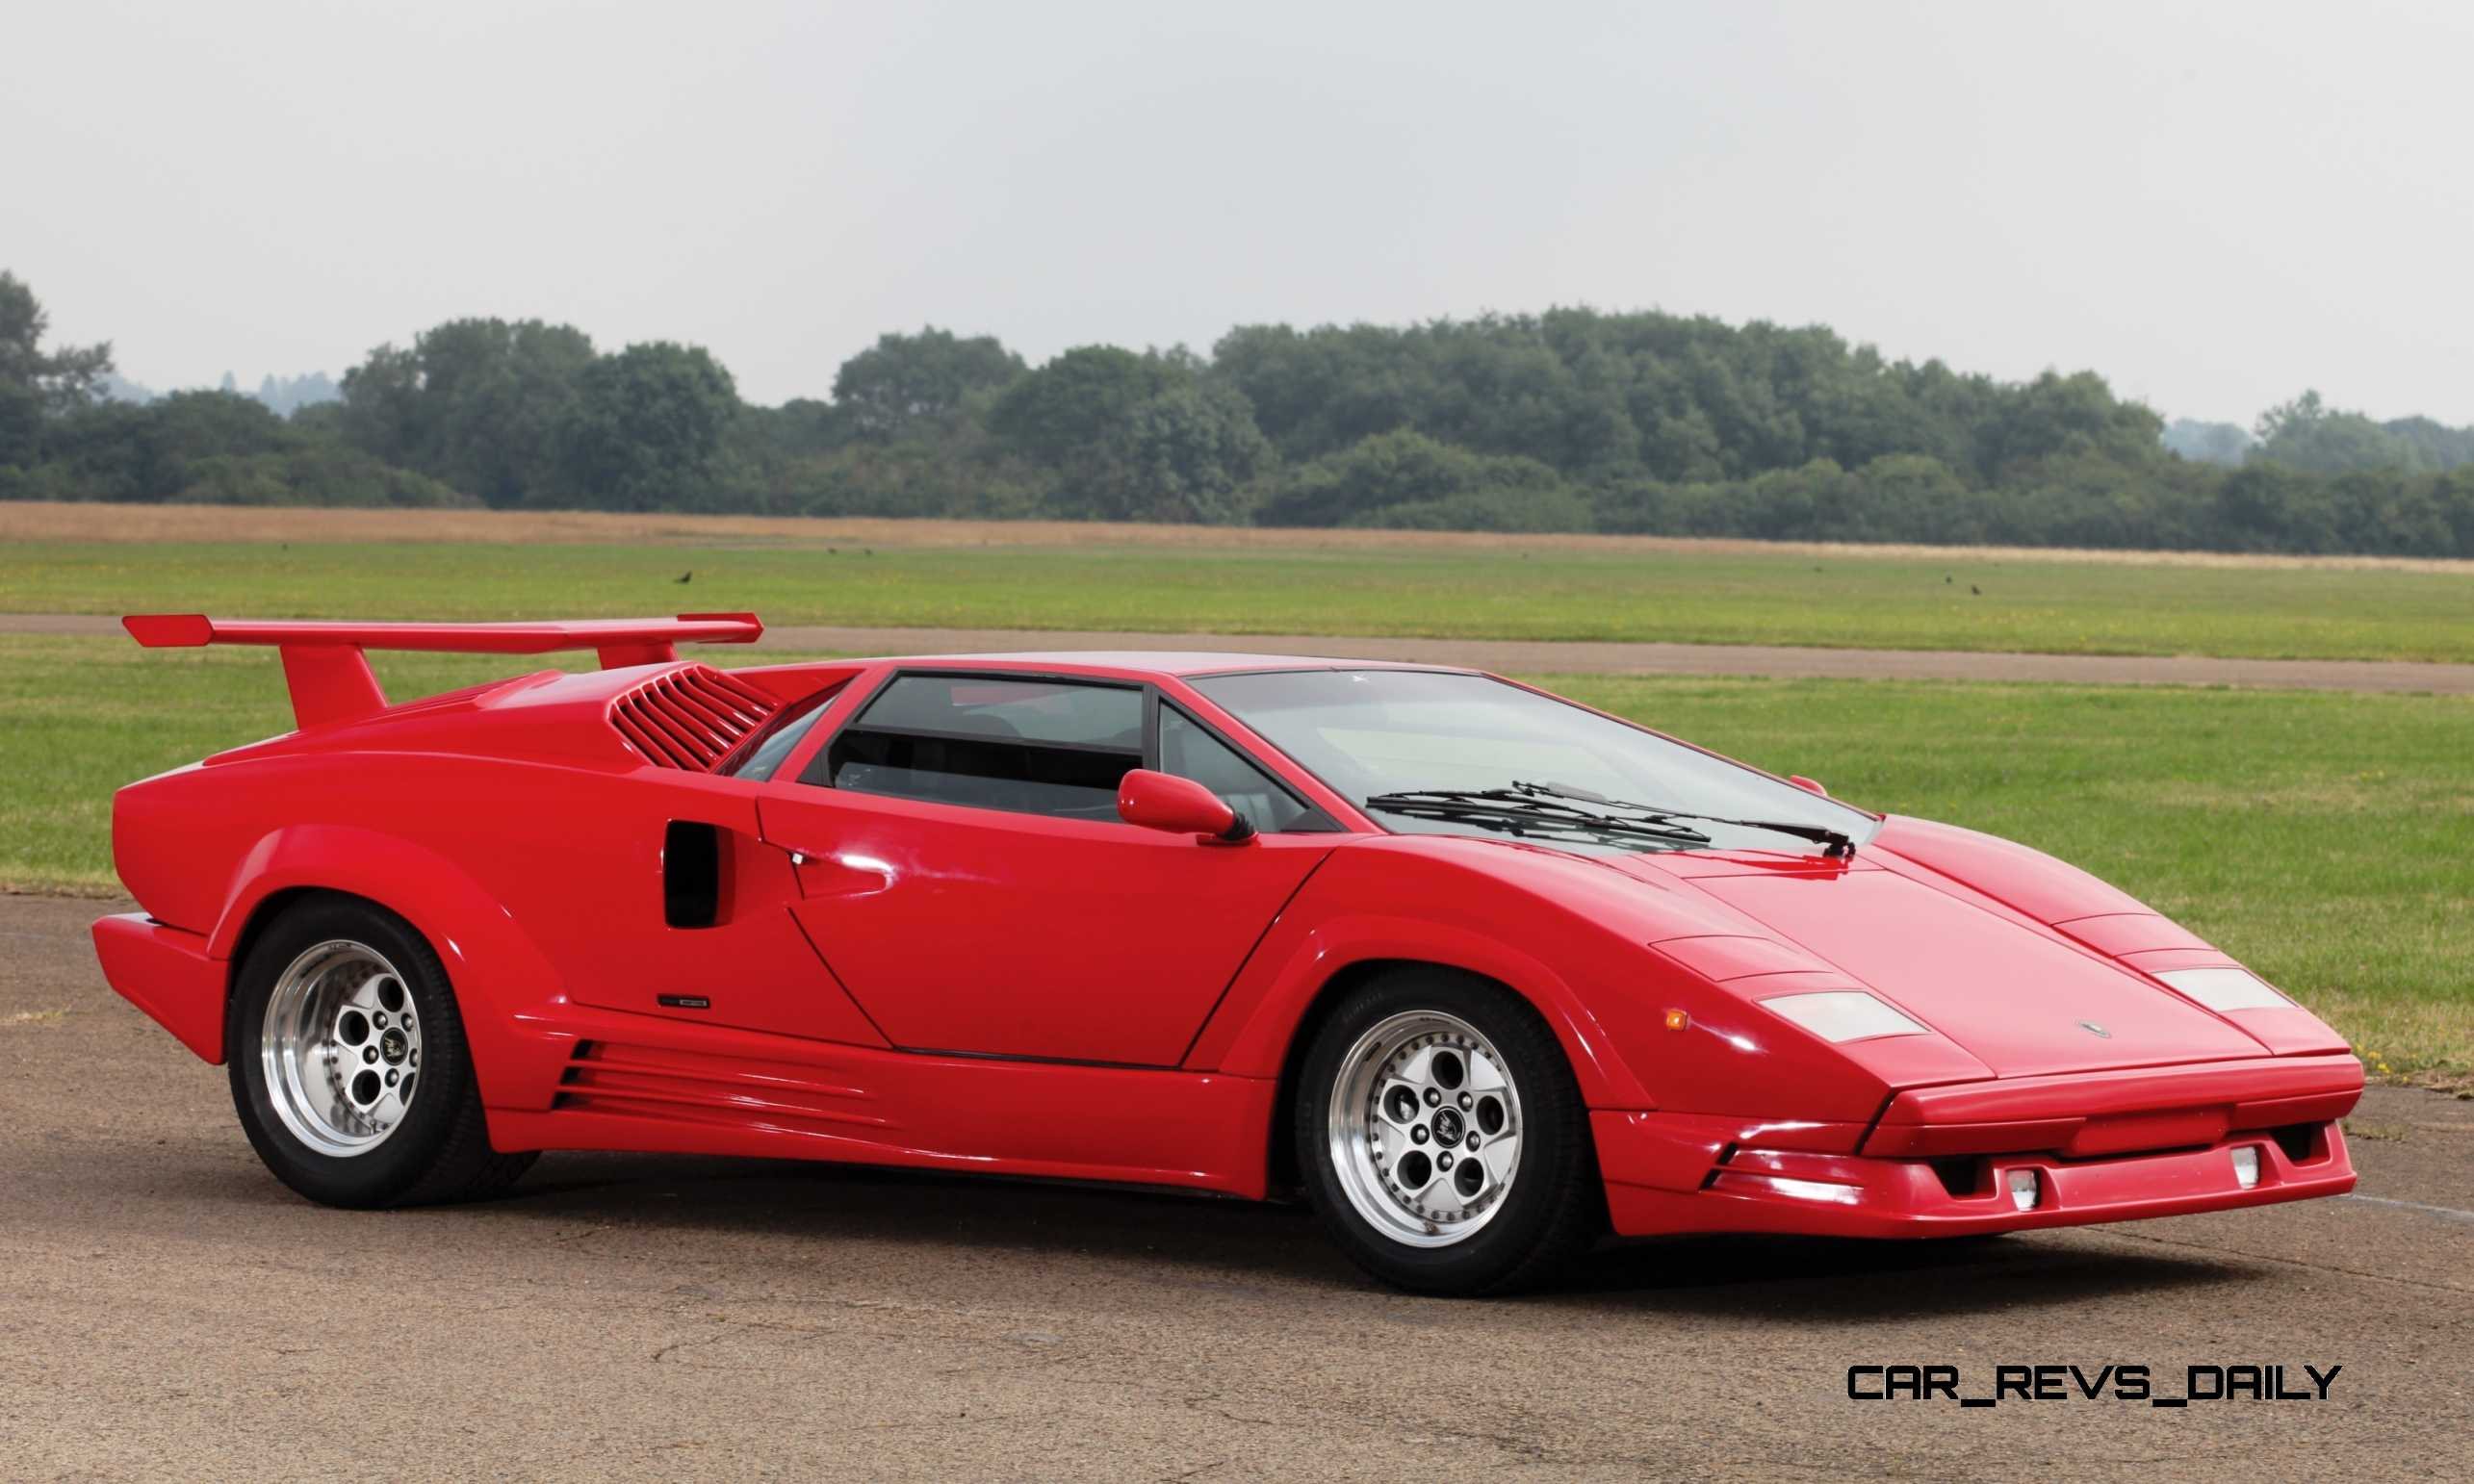 Very Best Sports Car Wallpaper 1990 Lamborghini Countach 25th Anniversary Edition Brings